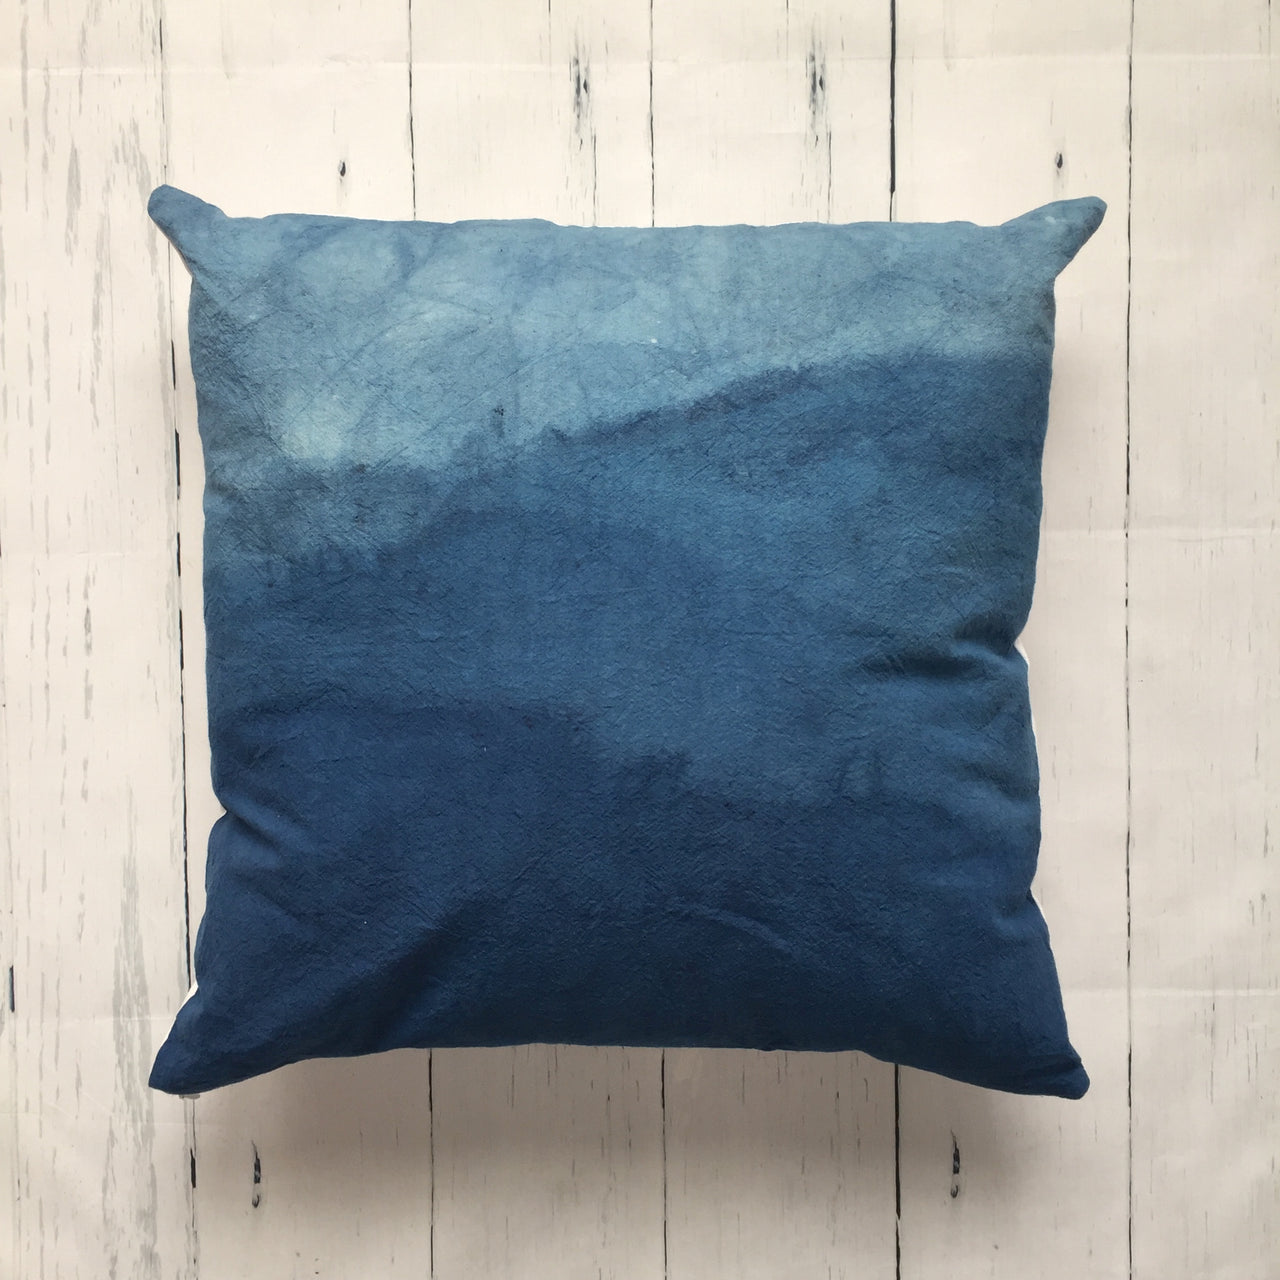 eco-friendly-sustainable-repurposed-handmade-home-decor-indigo-square-pillow